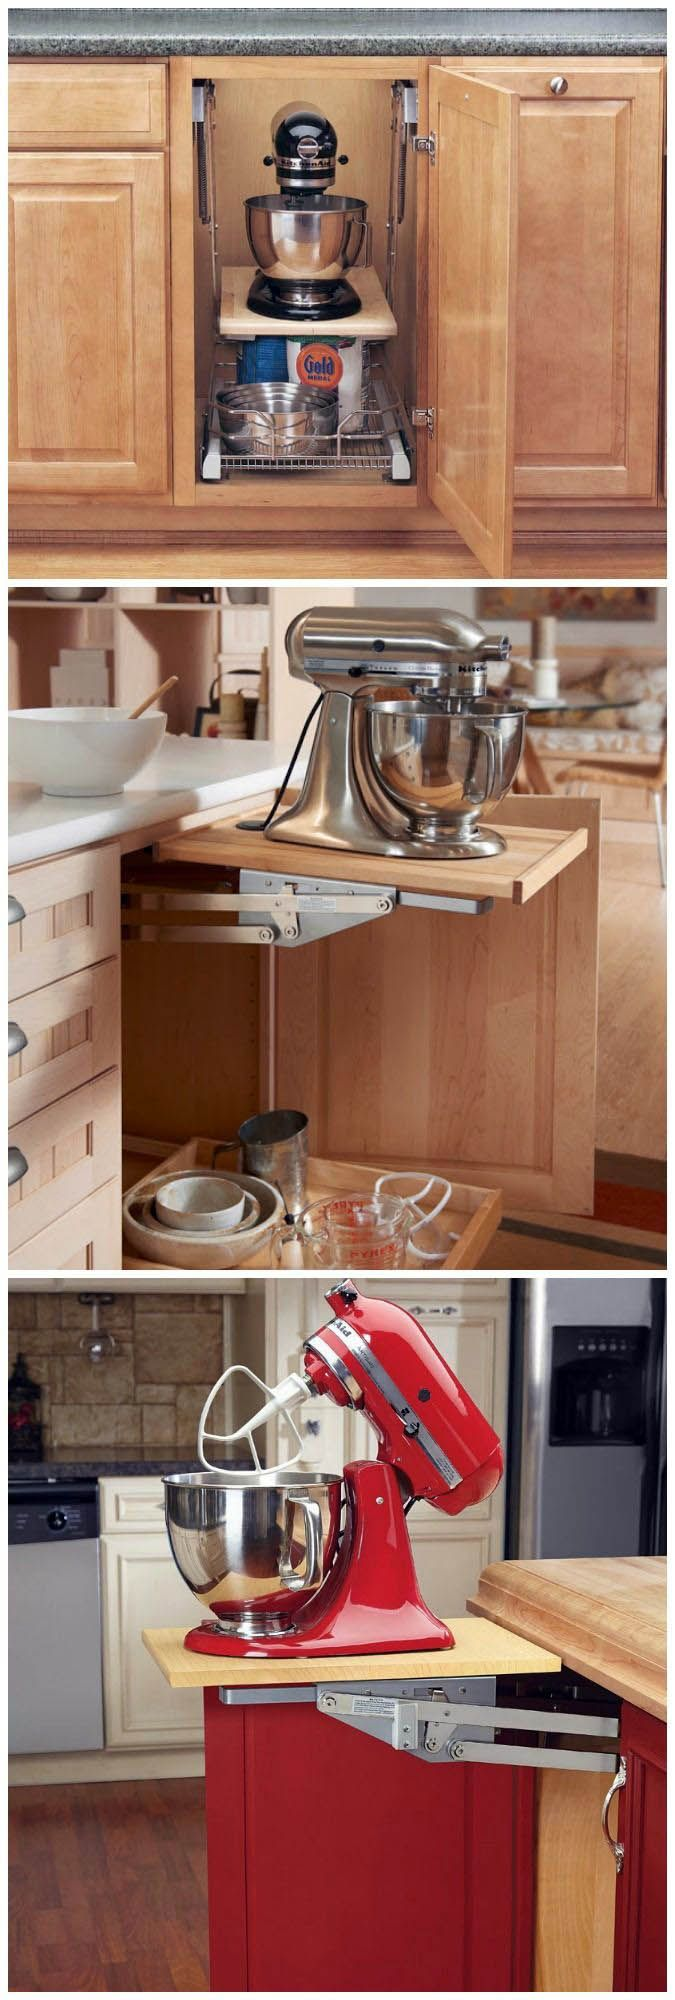 Modish kitchen storage ideas kmart only in omahhome.com ...